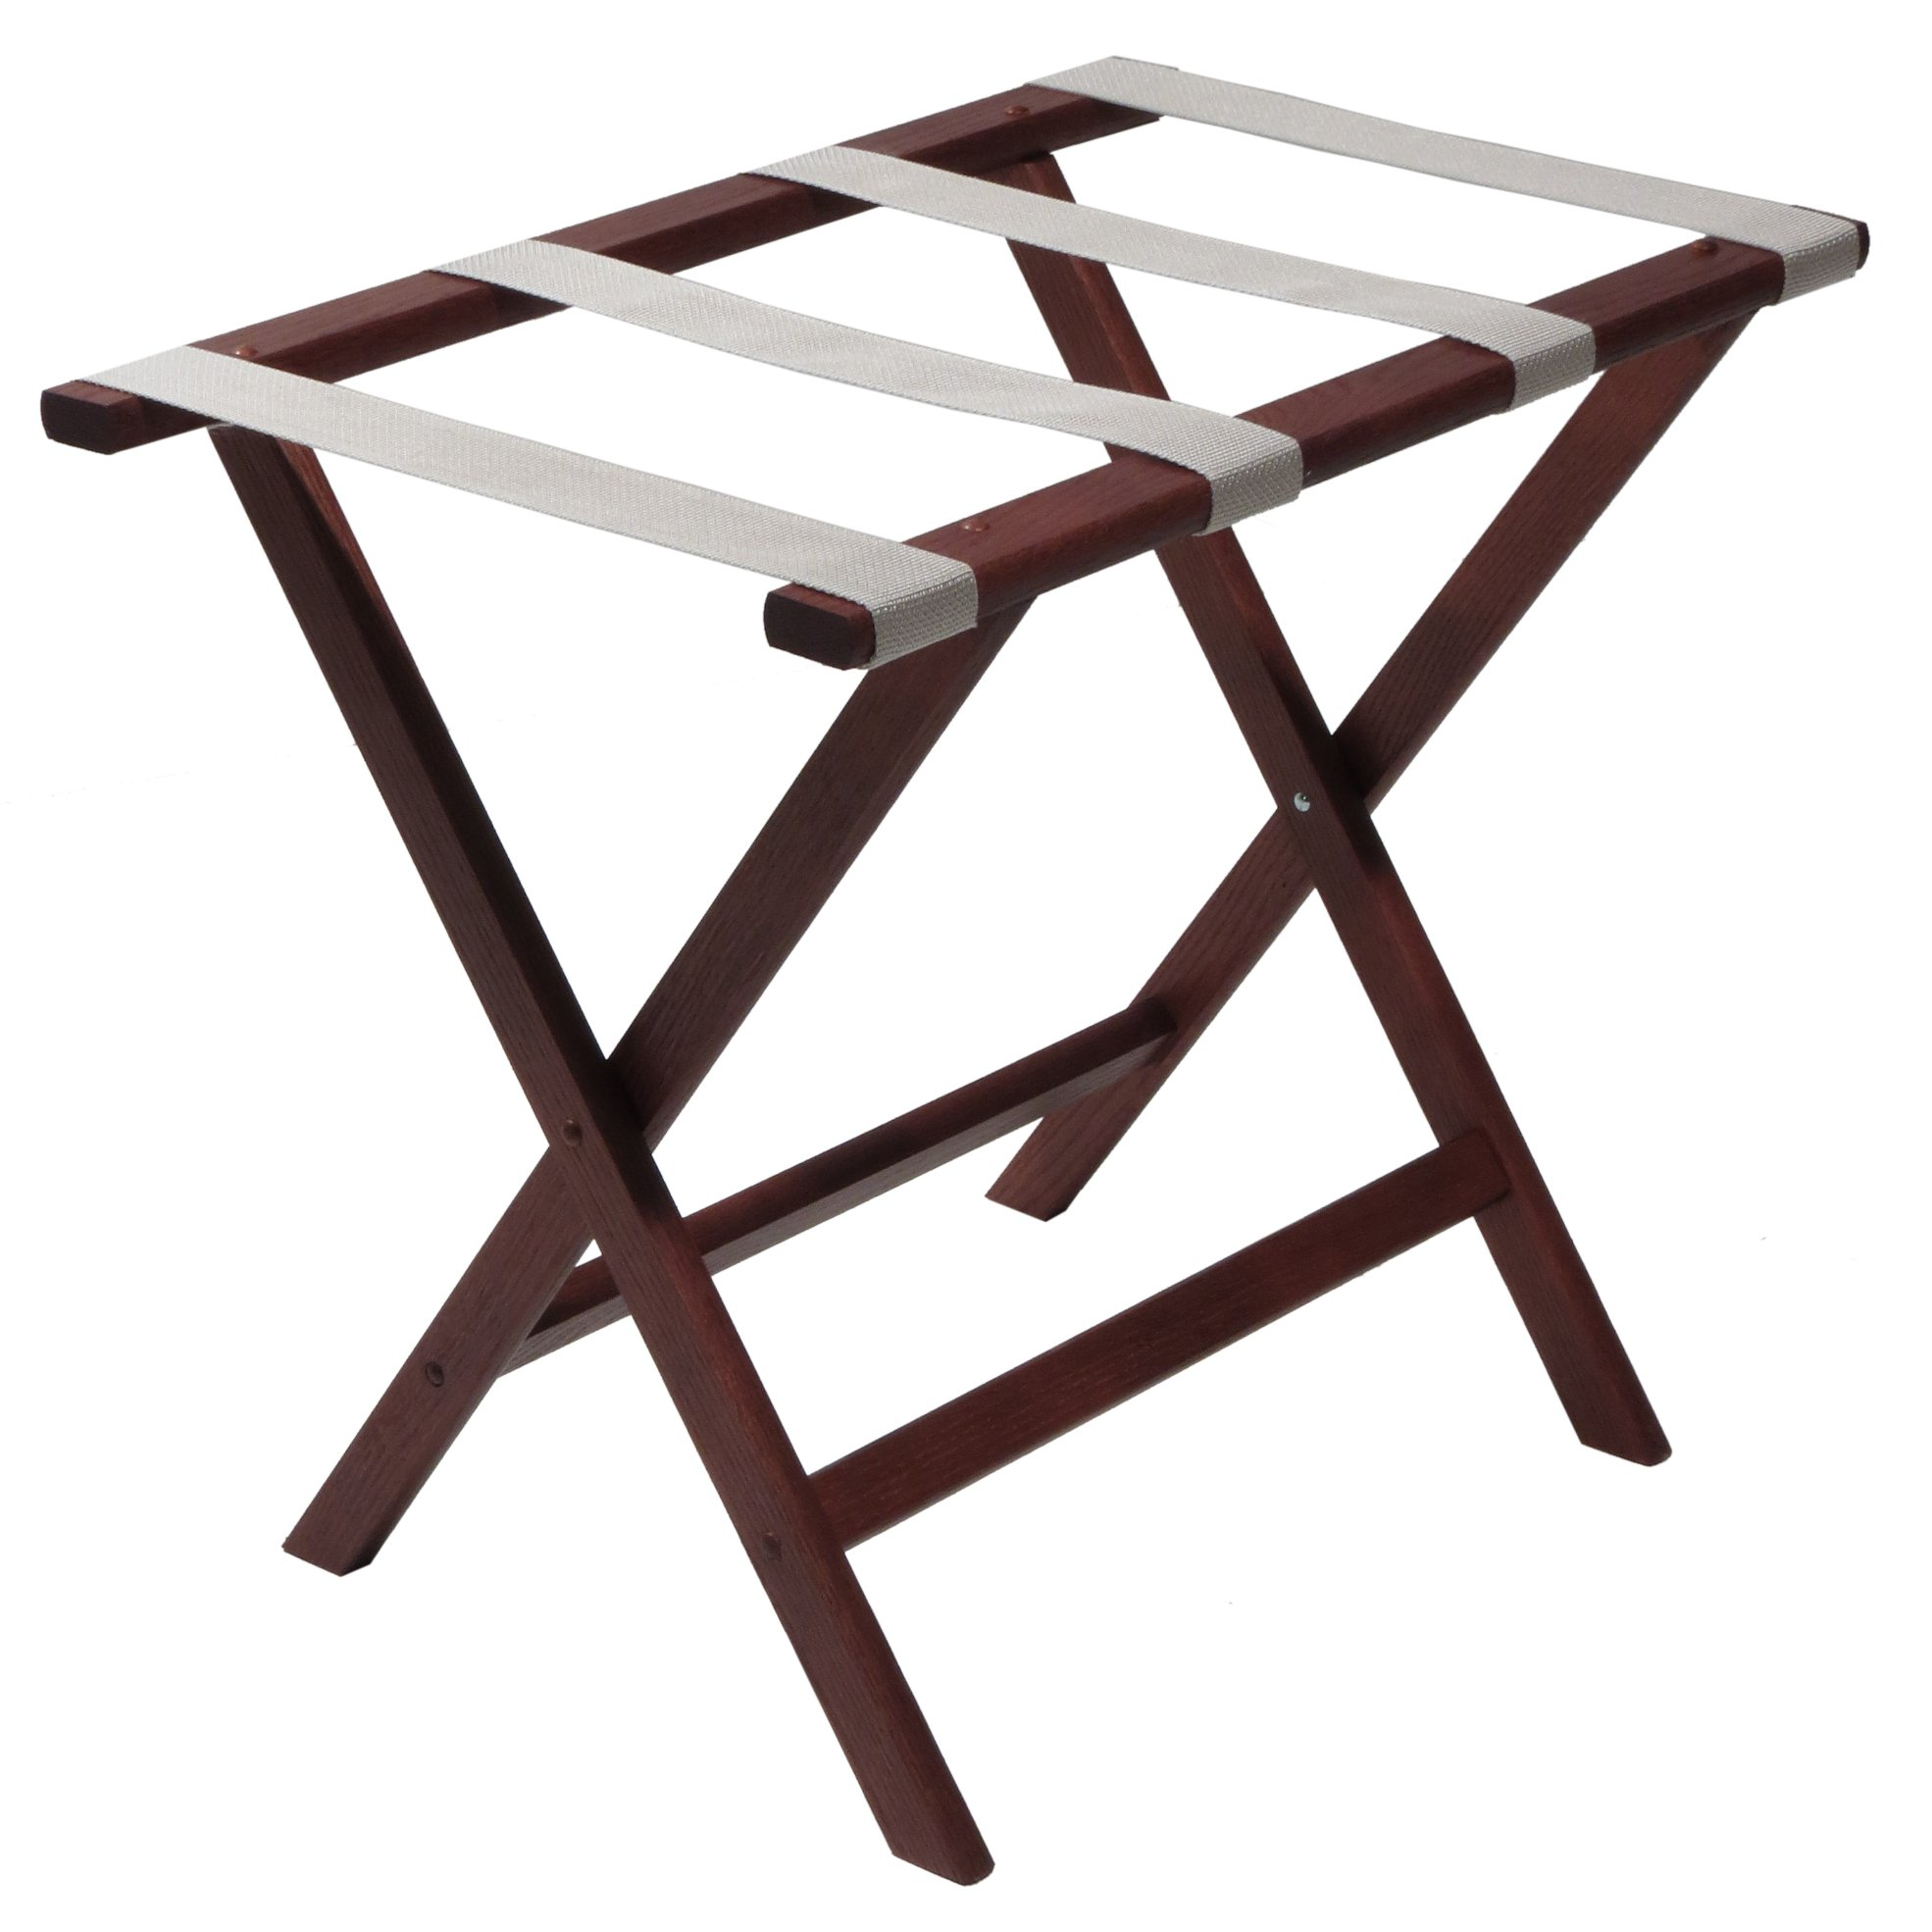 Wooden Mallet Deluxe Straight Leg Luggage Rack, Silver Straps, Mahogany